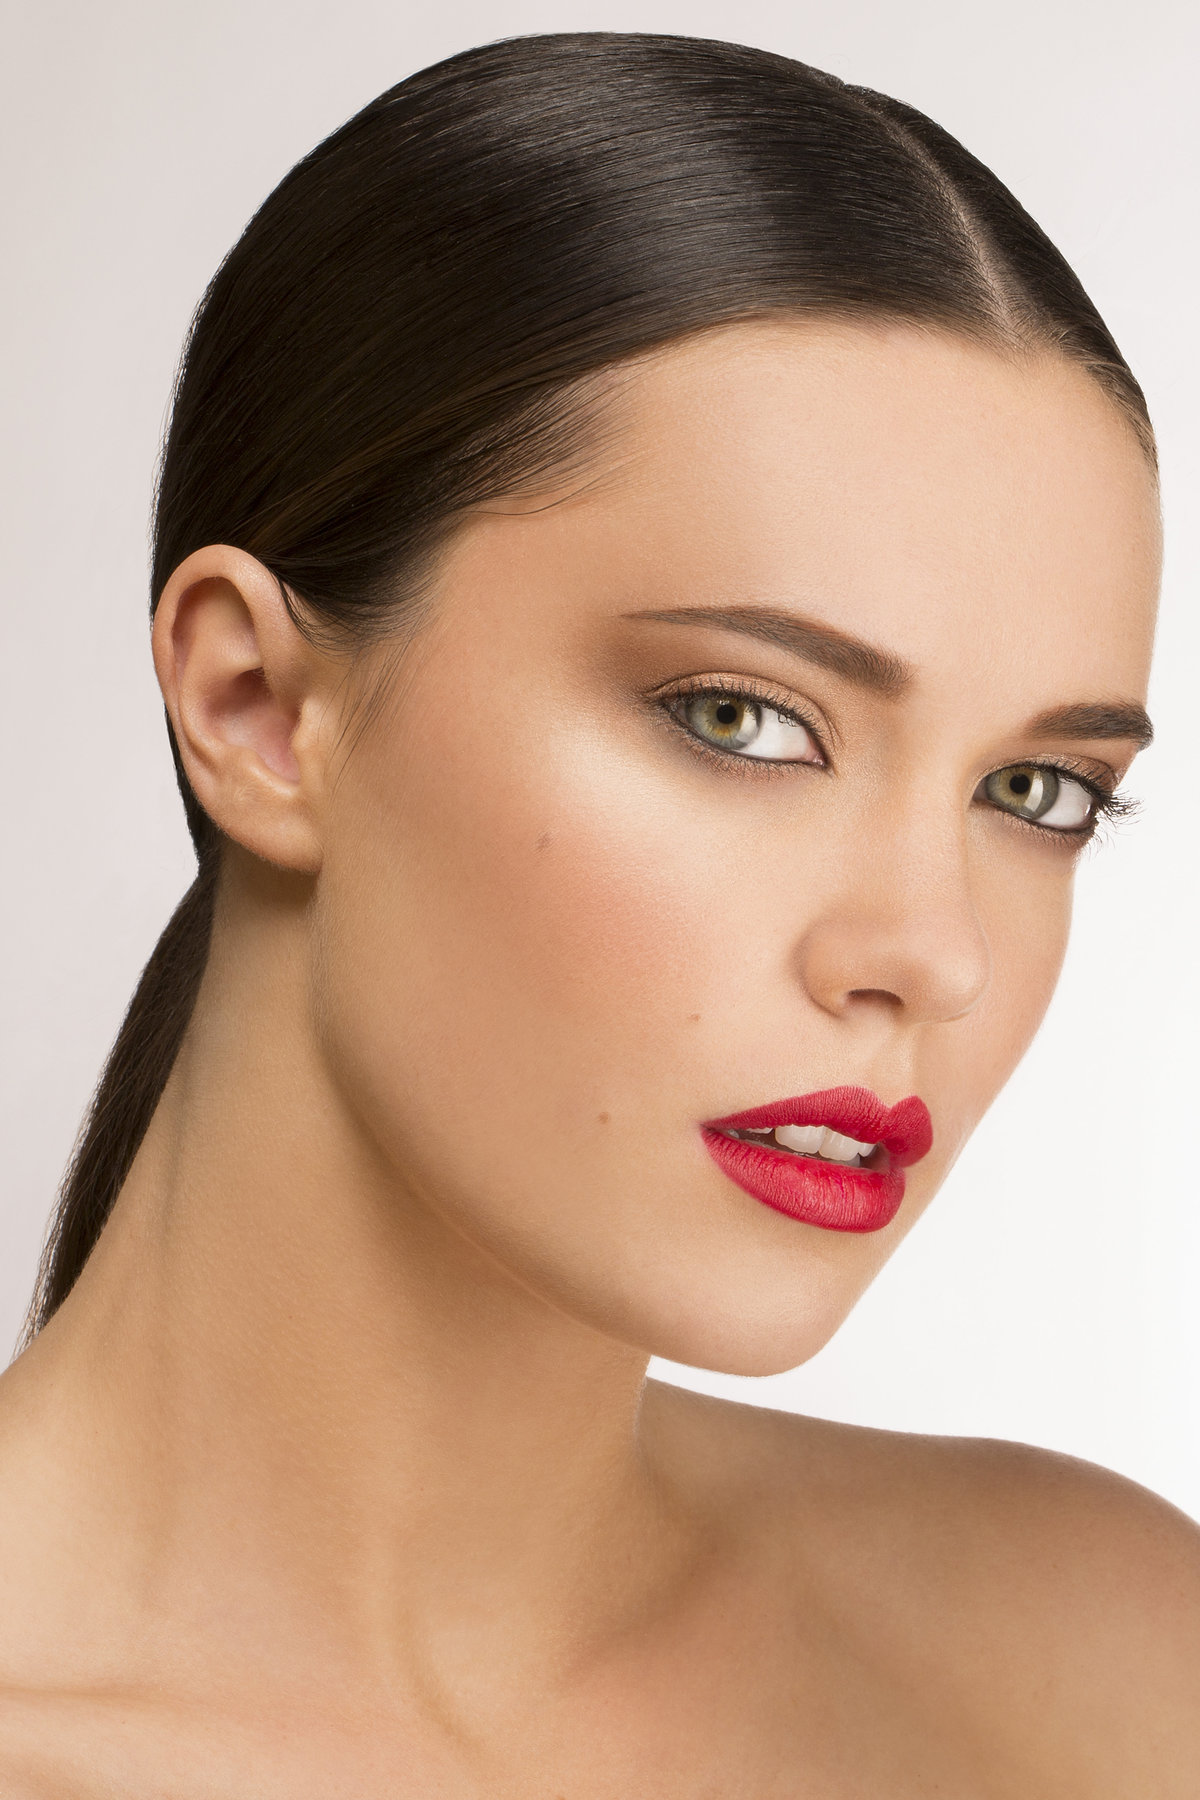 Beauty5_Cropped